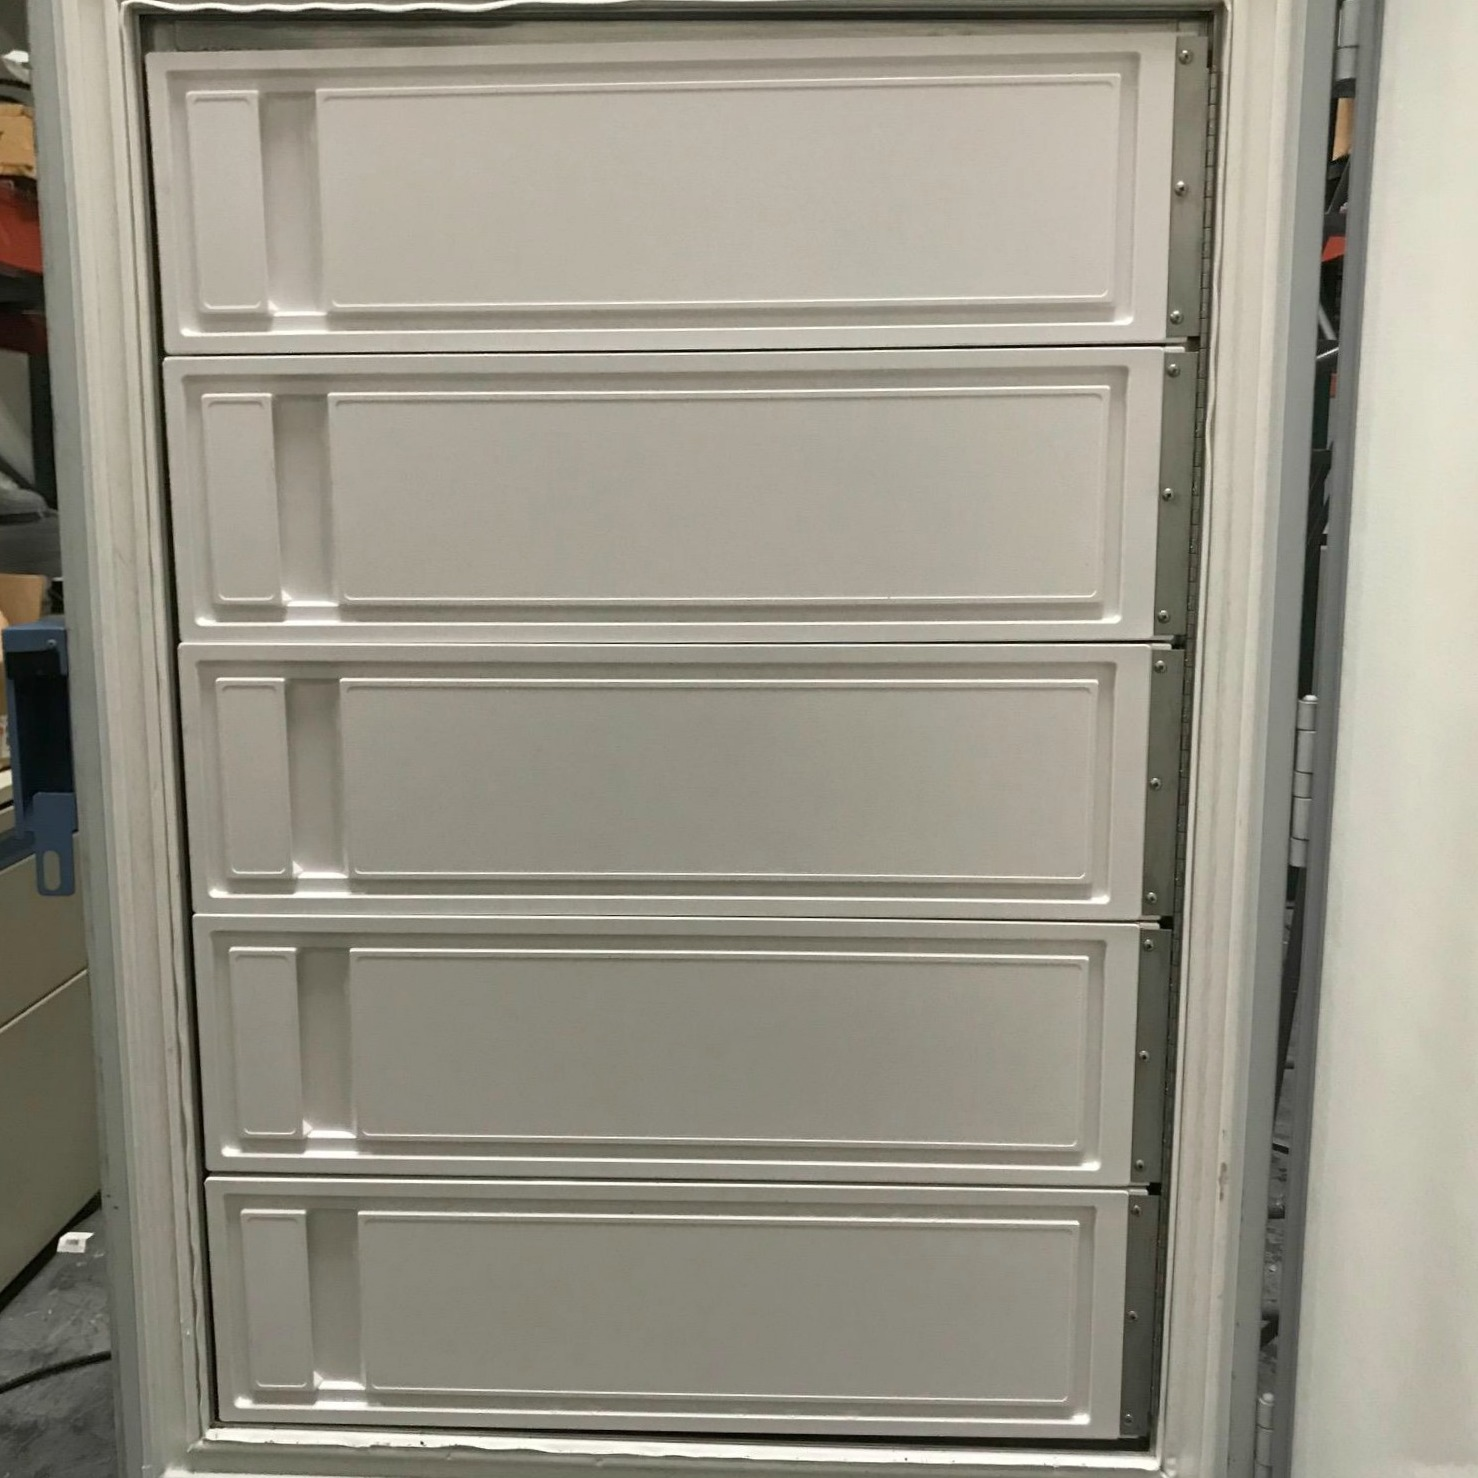 Thermo Scientific Thermo Scientific Revco -86 Ultima Plus Upright Freezer ULT2586-10-D41 Image